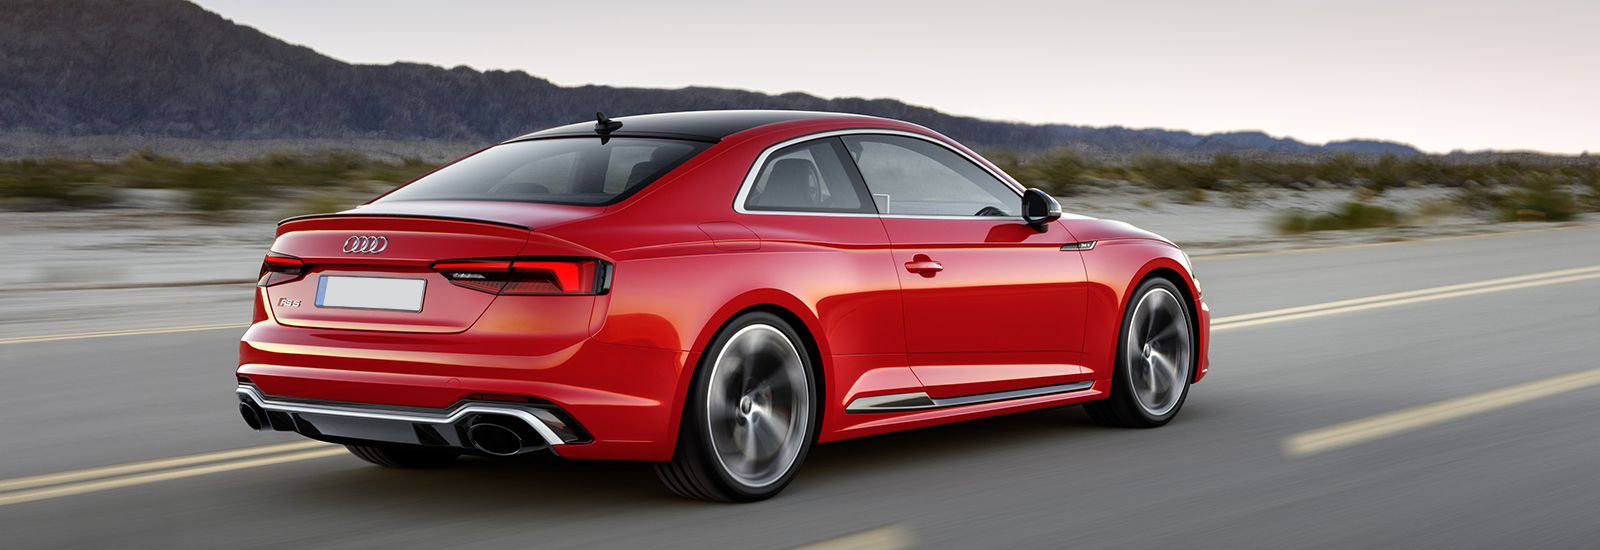 2018 audi rs5 sportback. interesting sportback 2017 audi rs5 price and release intended 2018 audi rs5 sportback